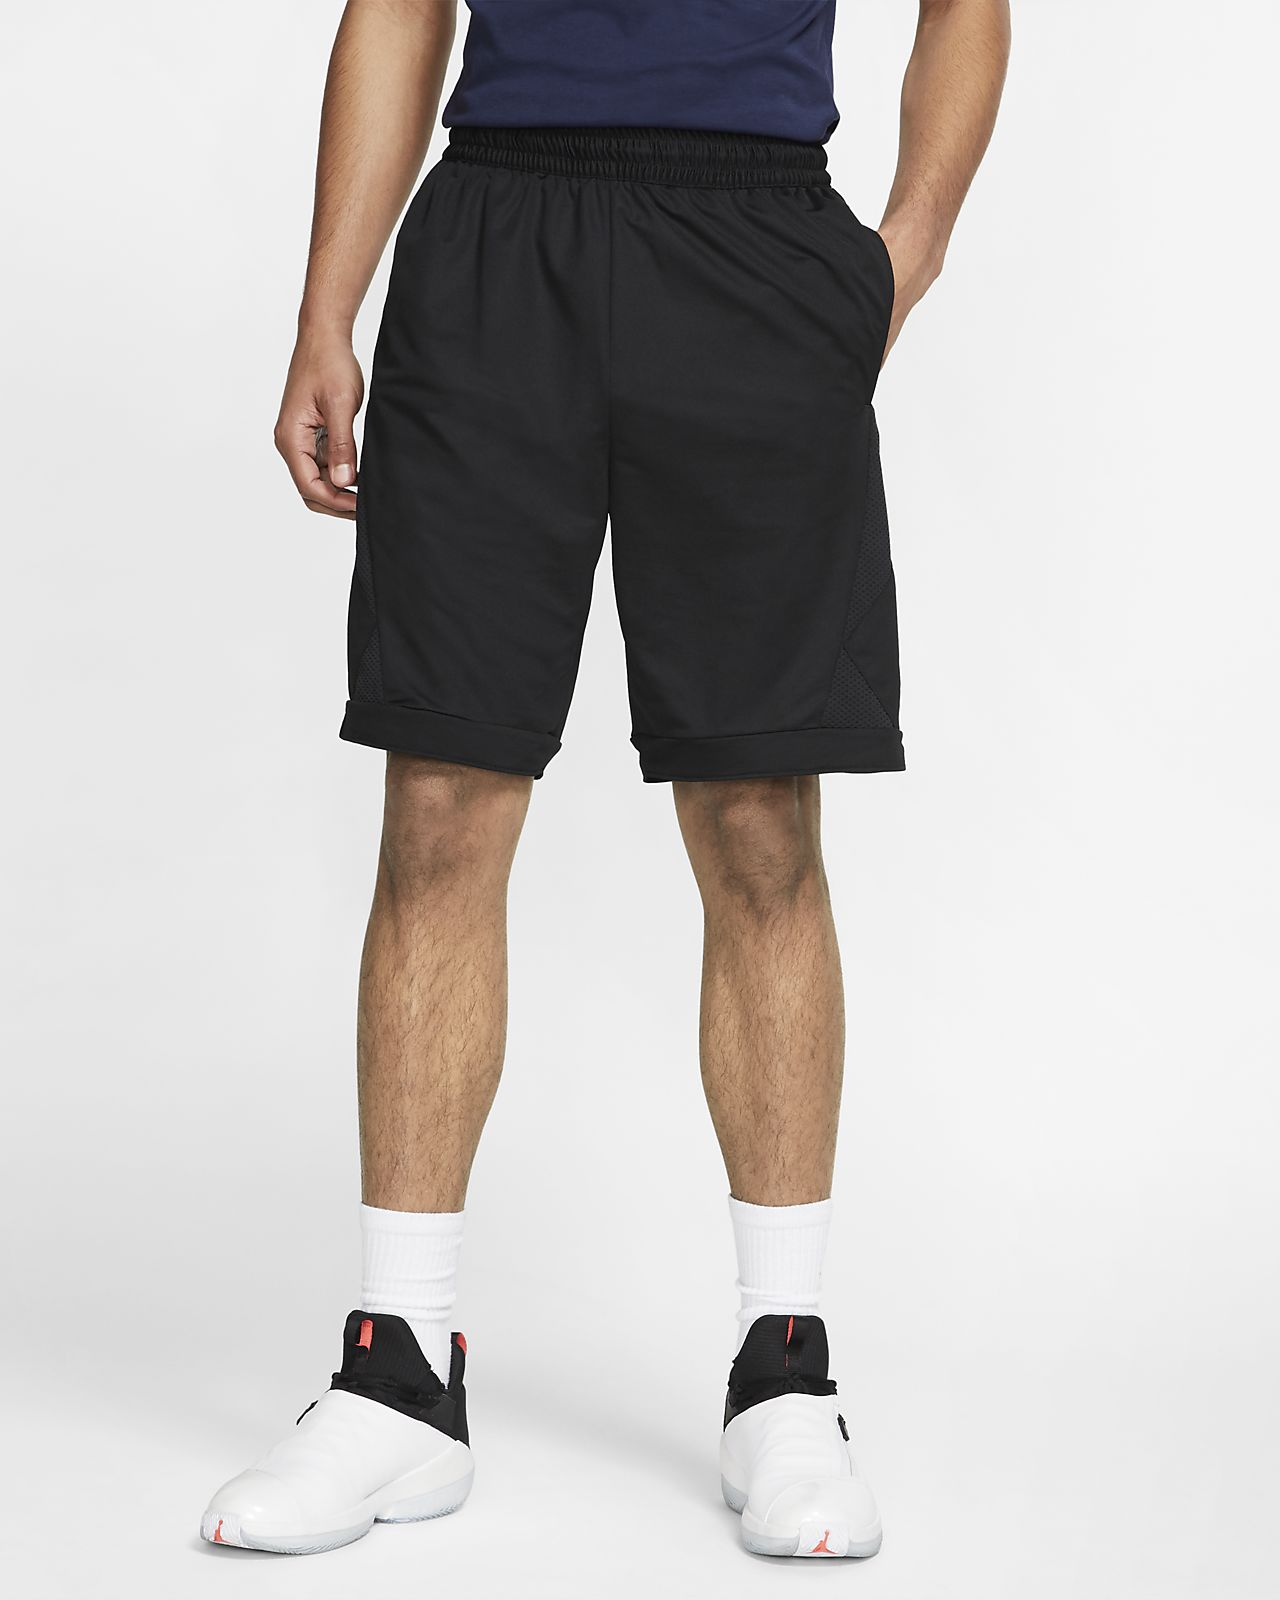 promo code bf0fb bcd72 ... Jordan Authentic Triangle Men s Basketball Shorts